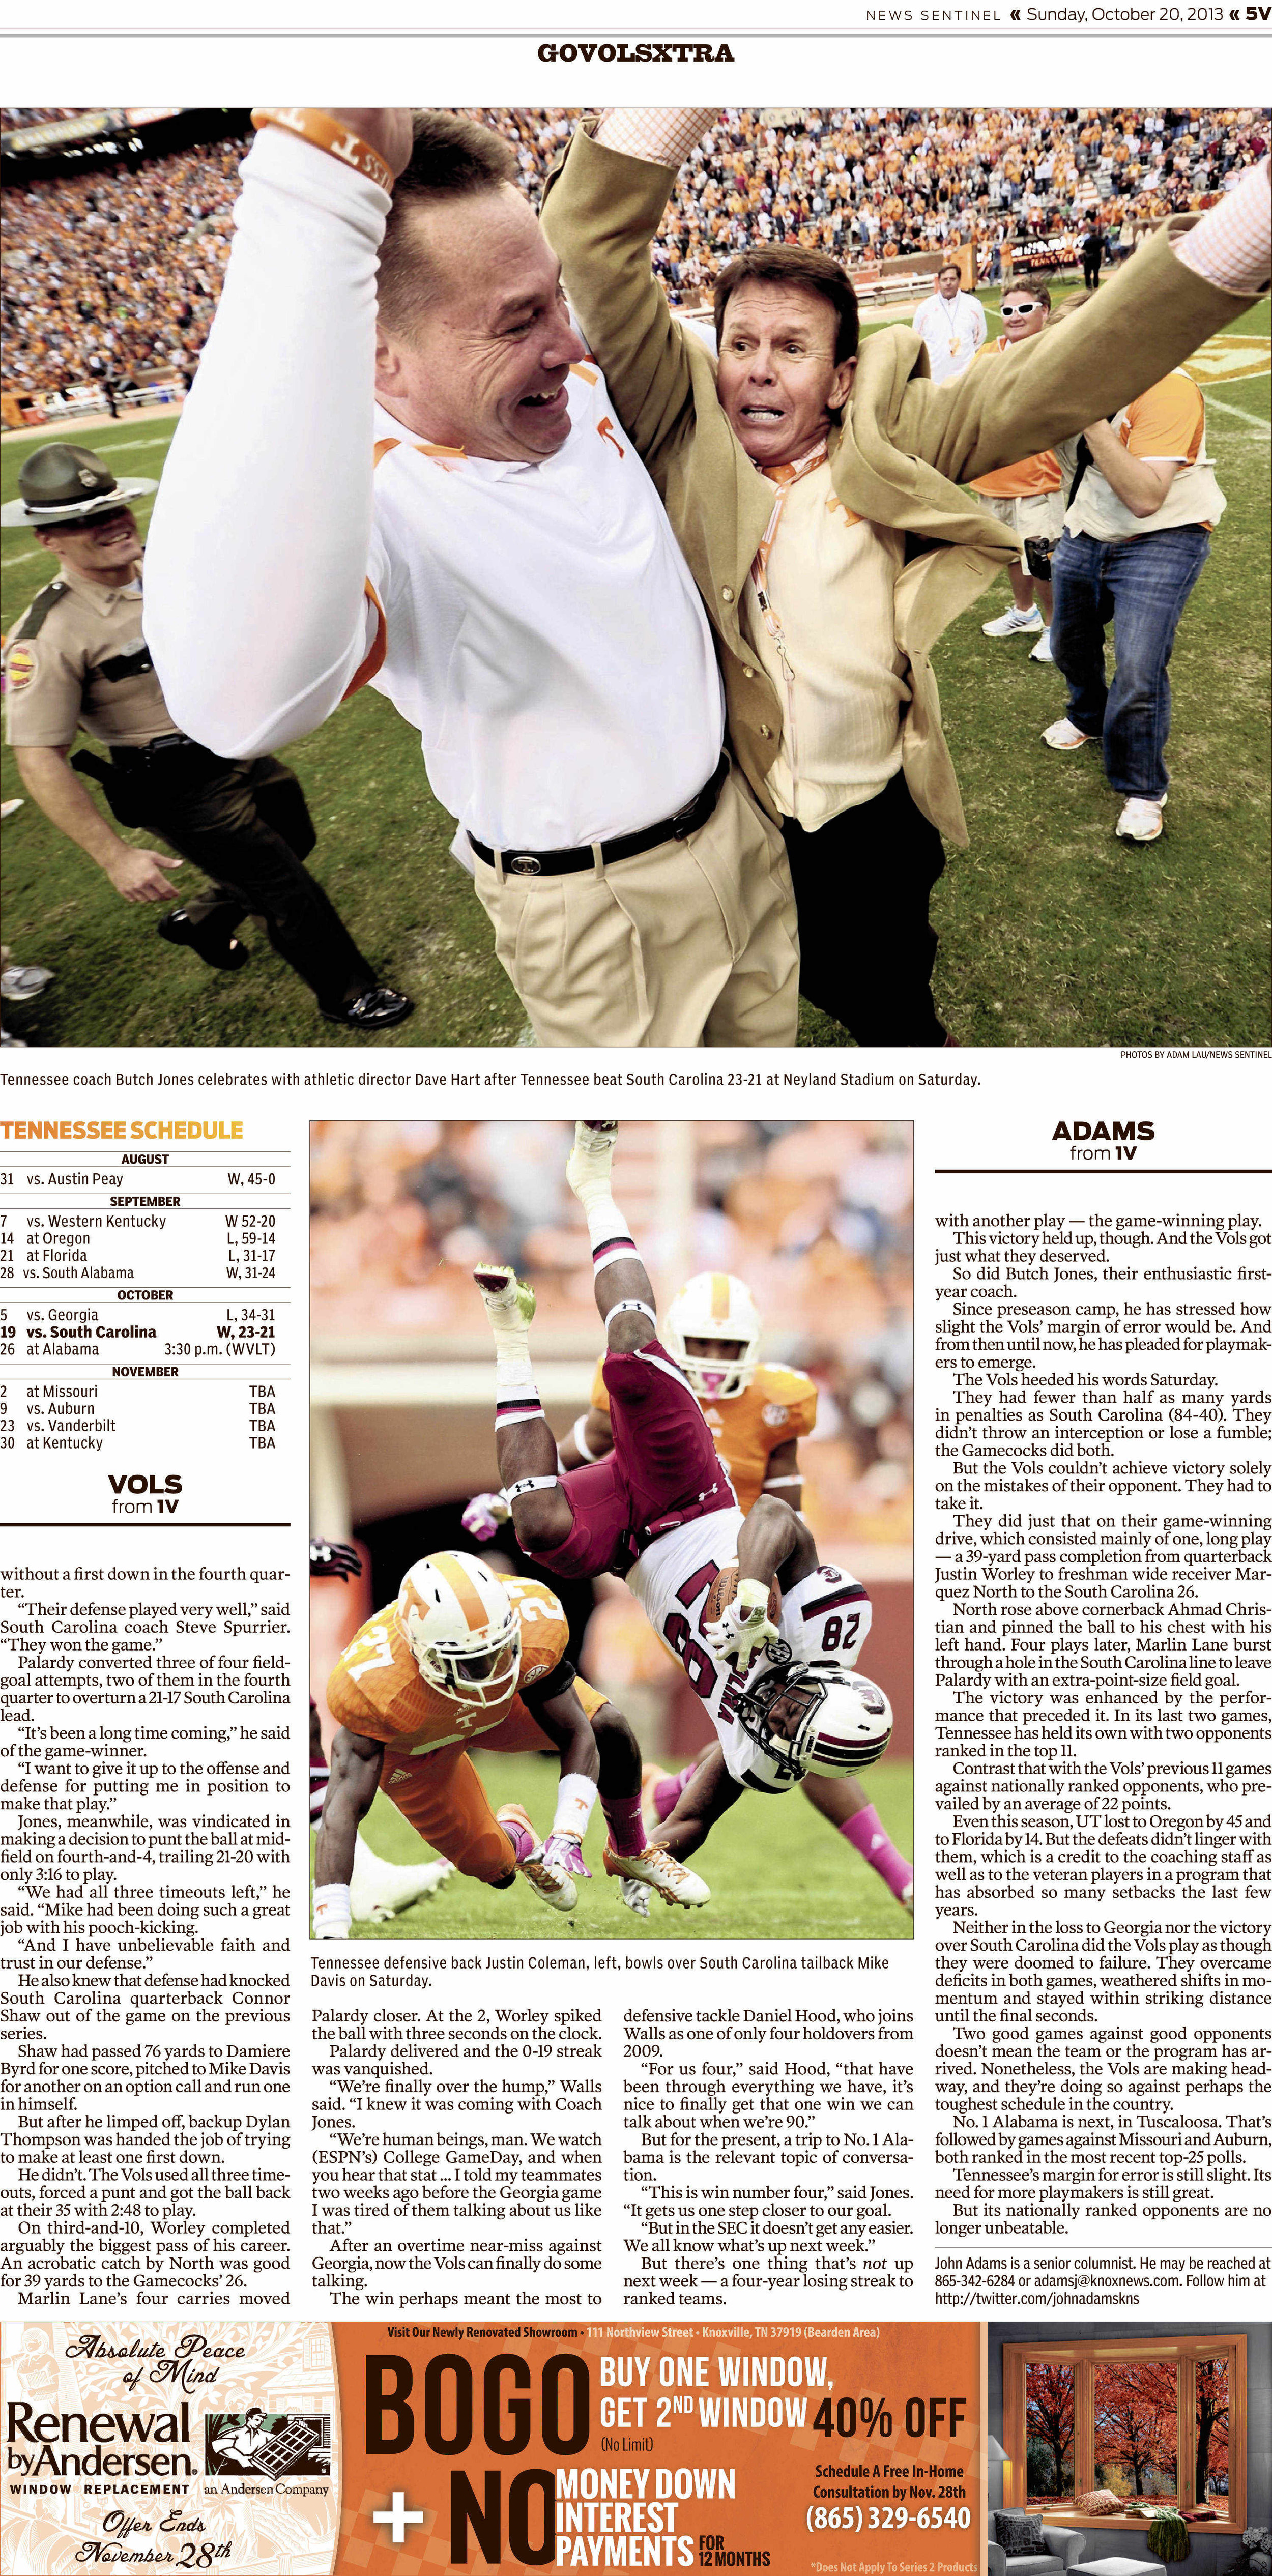 Knoxville News Sentinel. Photos by Adam Lau.